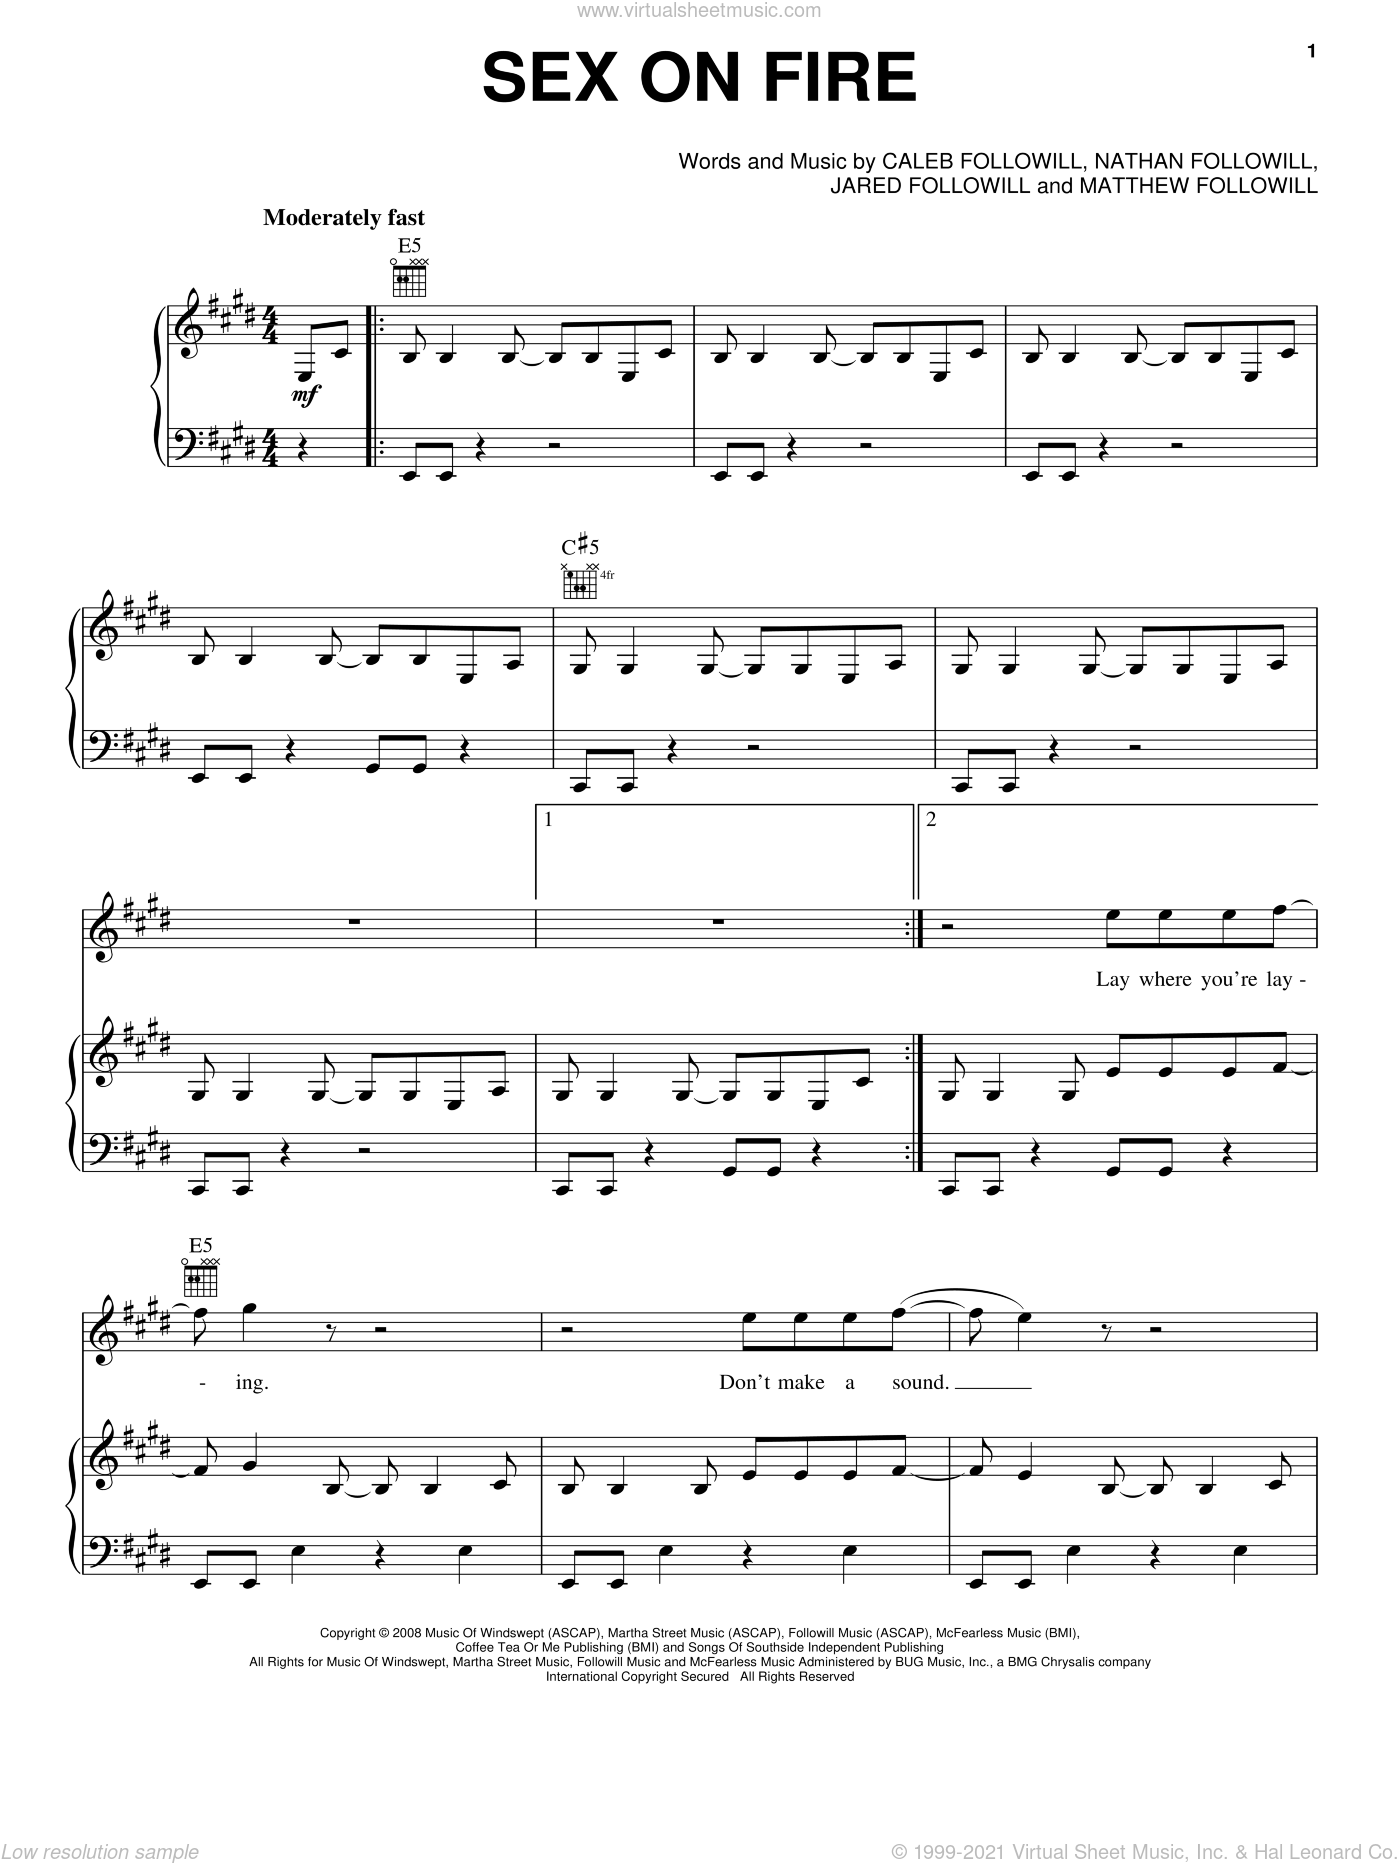 Sex On Fire sheet music for voice, piano or guitar by Nathan Followill